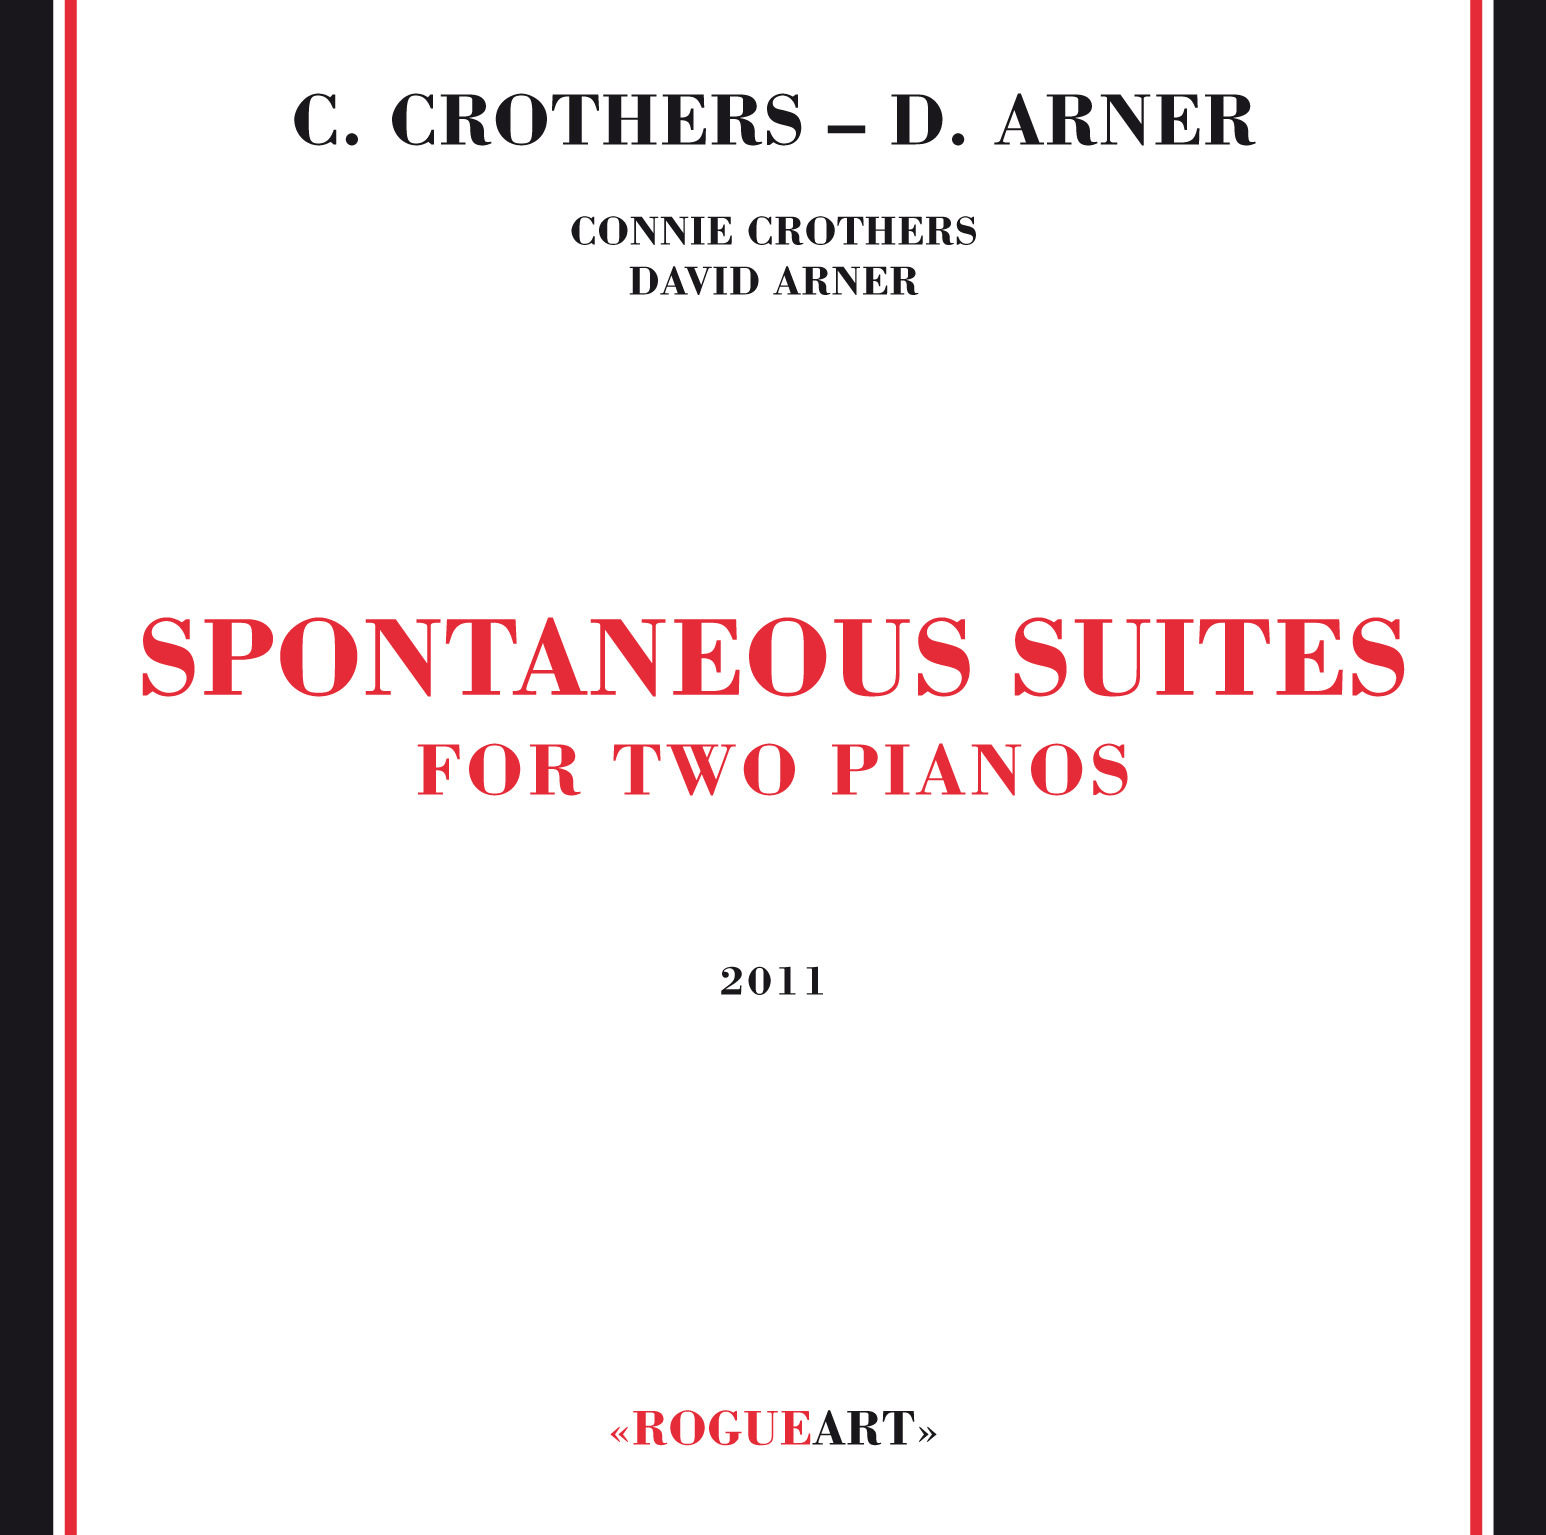 Front Cover of the box set SPONTANEOUS SUITE FOR TWO PIANOS